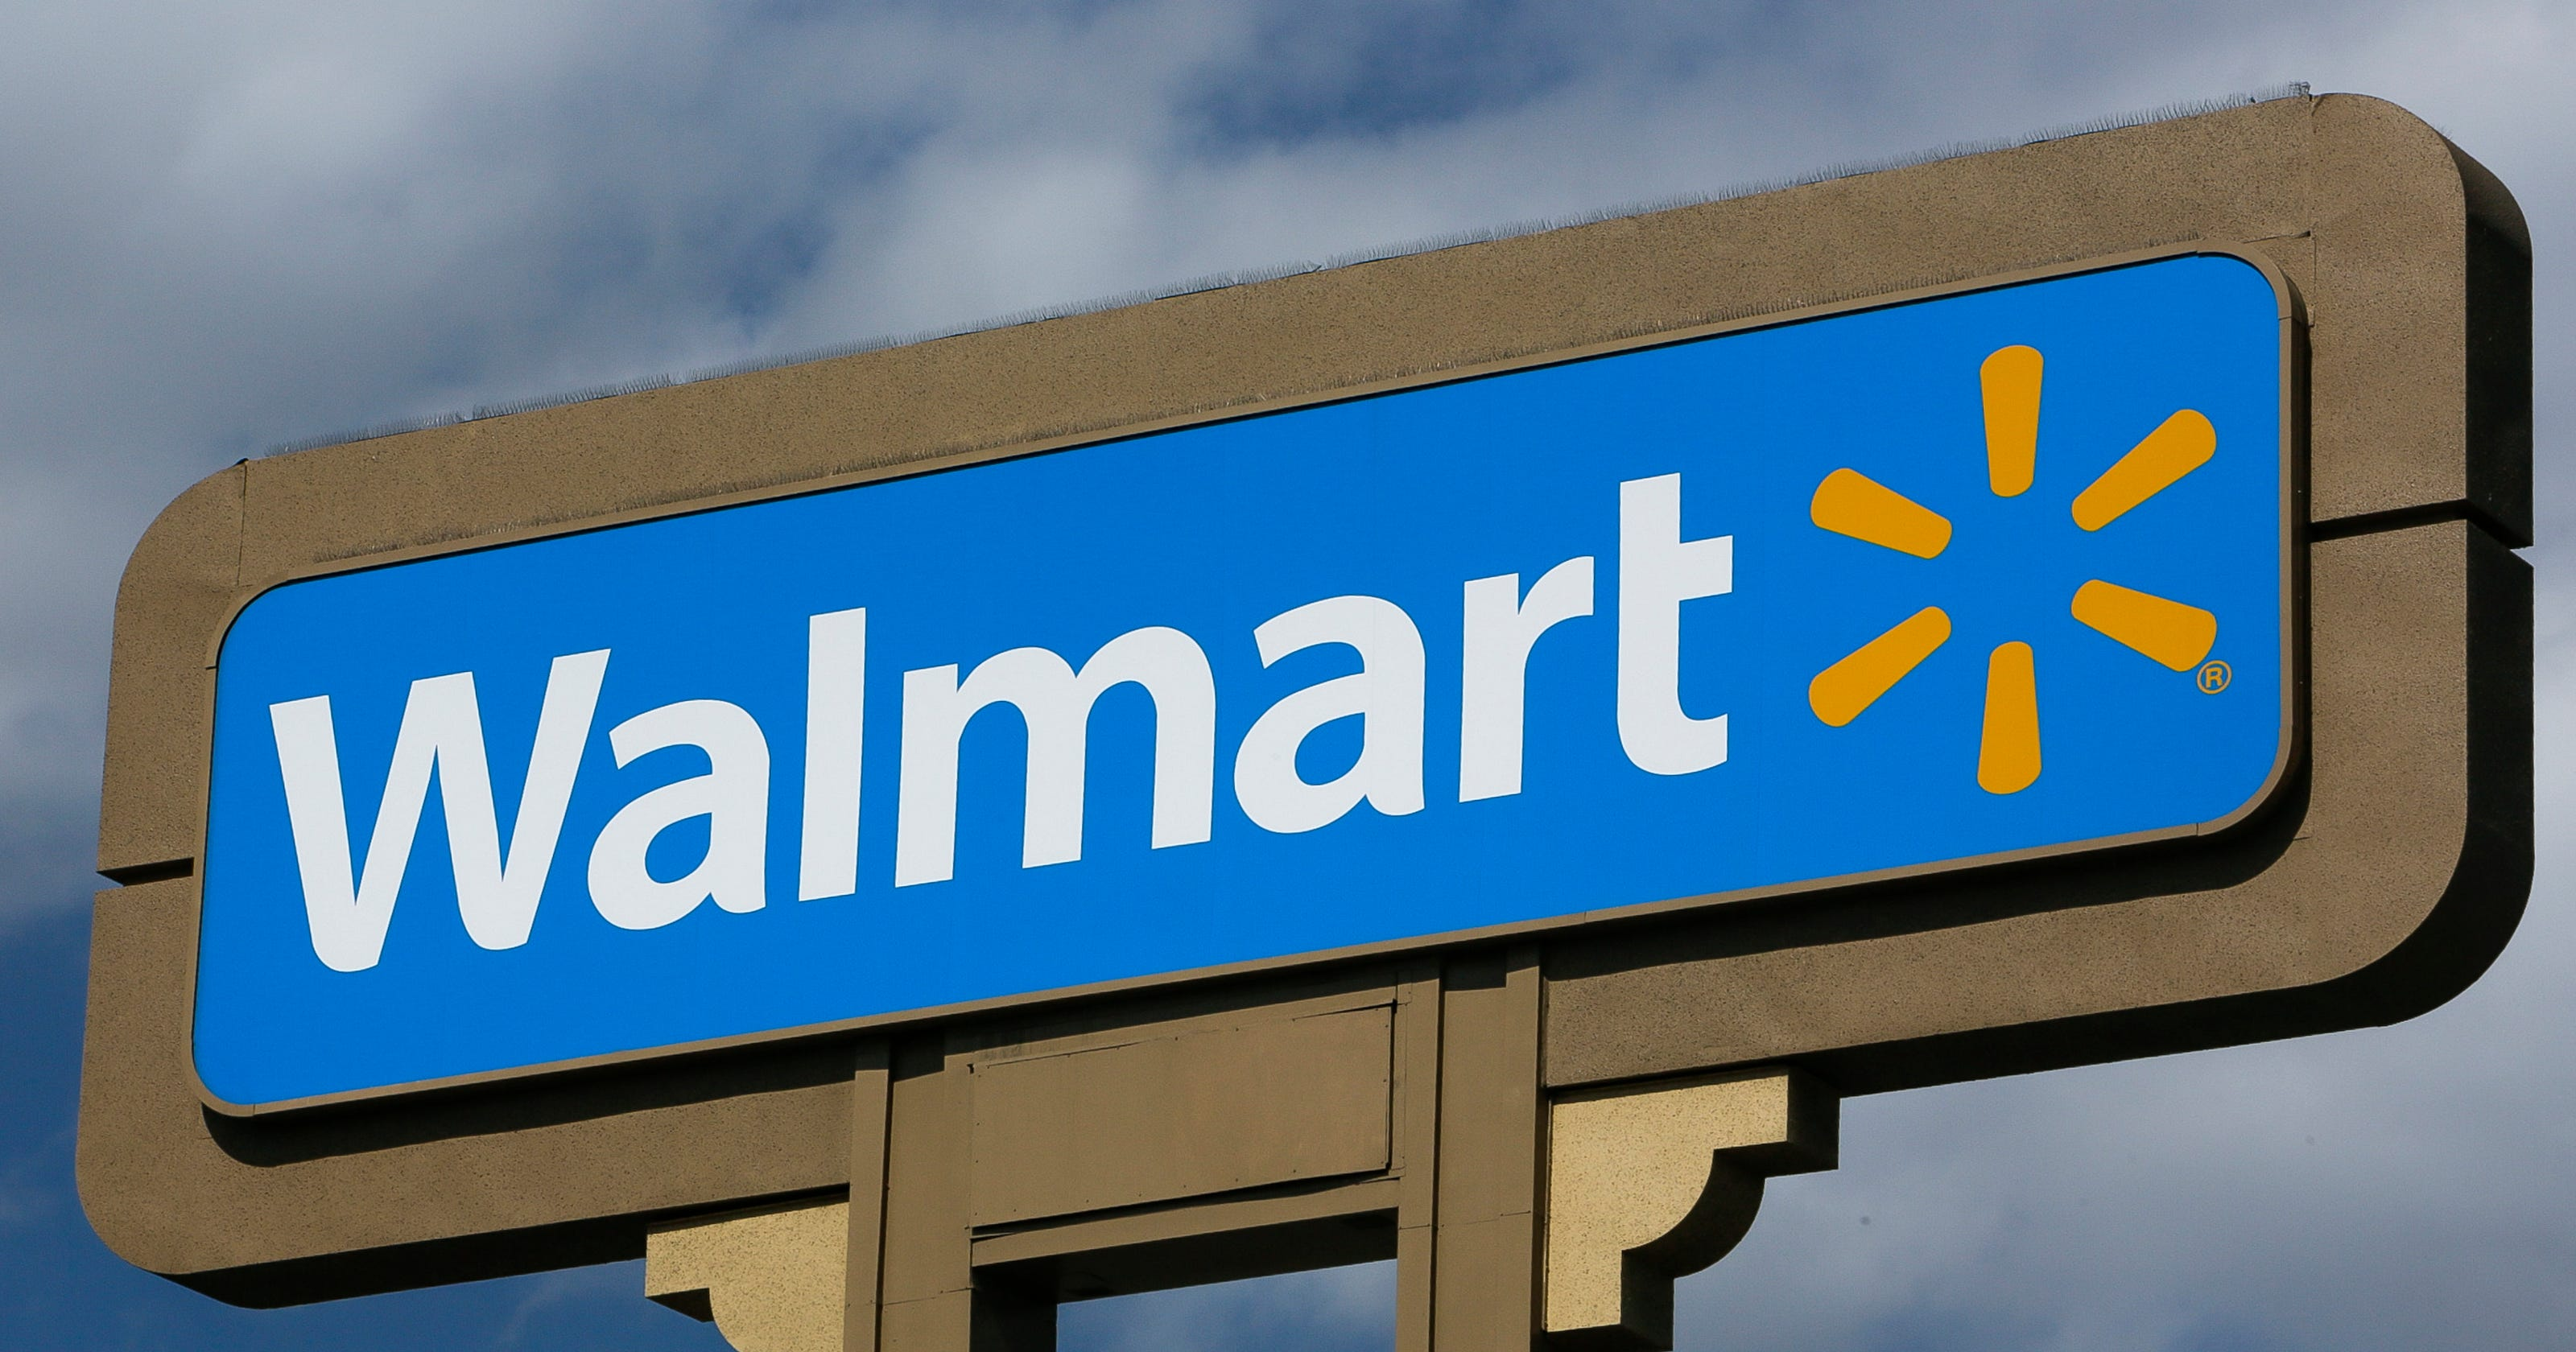 Questions remain on how Walmart's latest firearm policies